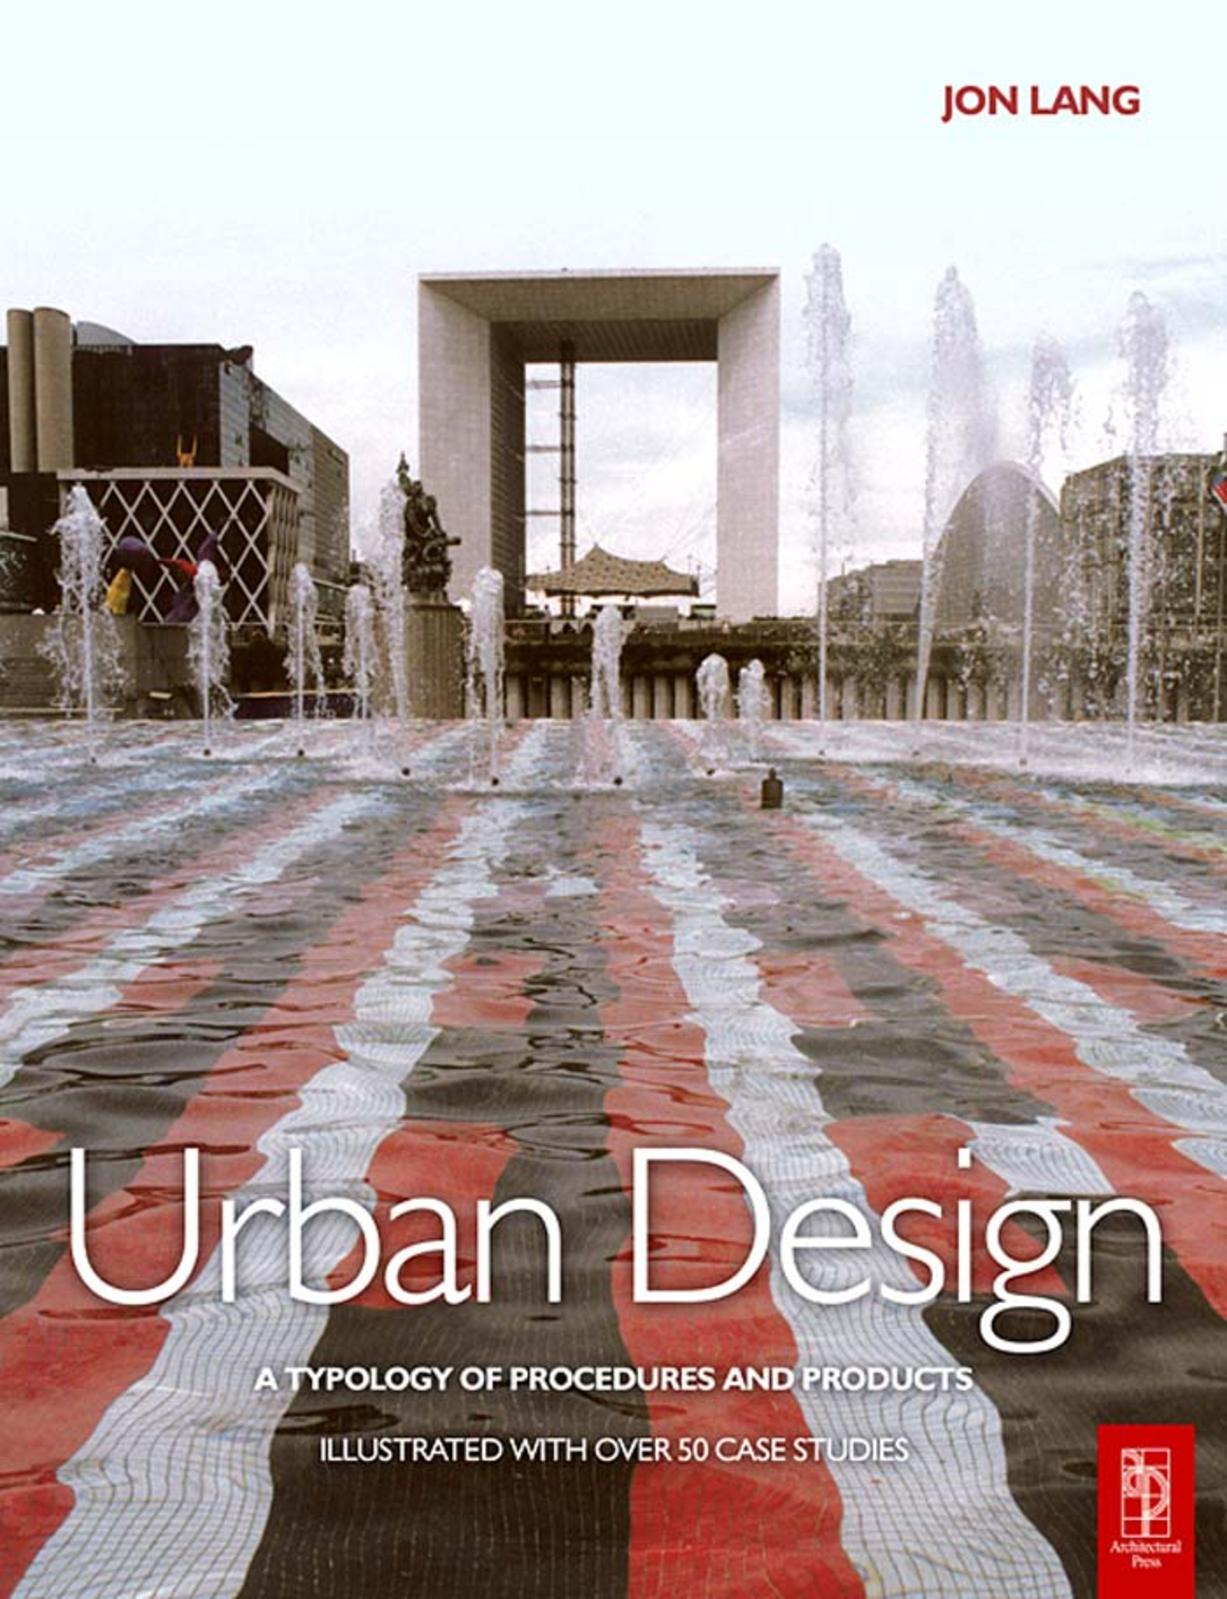 Calaméo urban design a typology of procedures and products